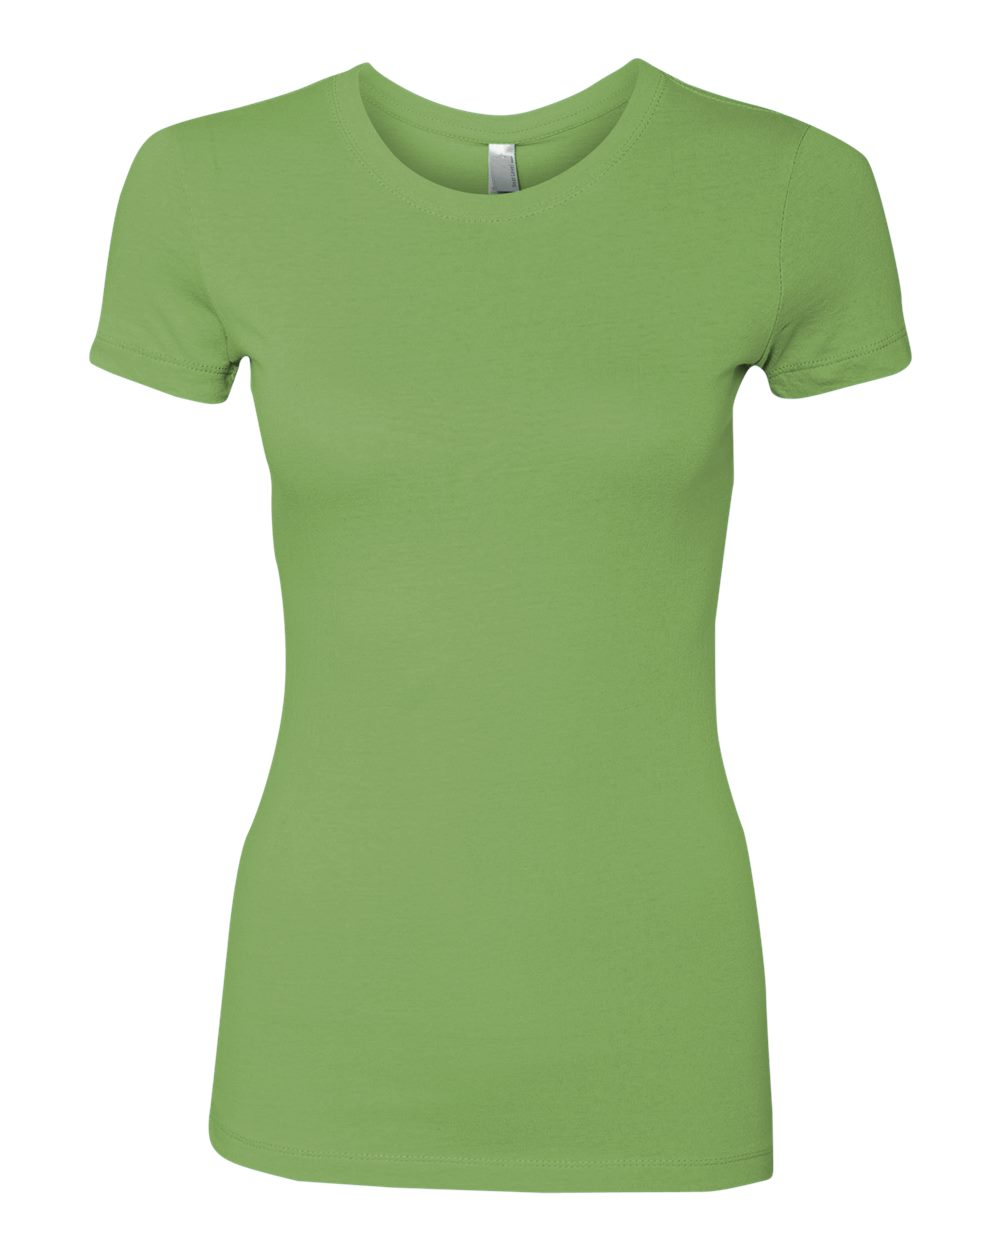 Next_Level_3300L_Apple_Green_Front_High.jpg